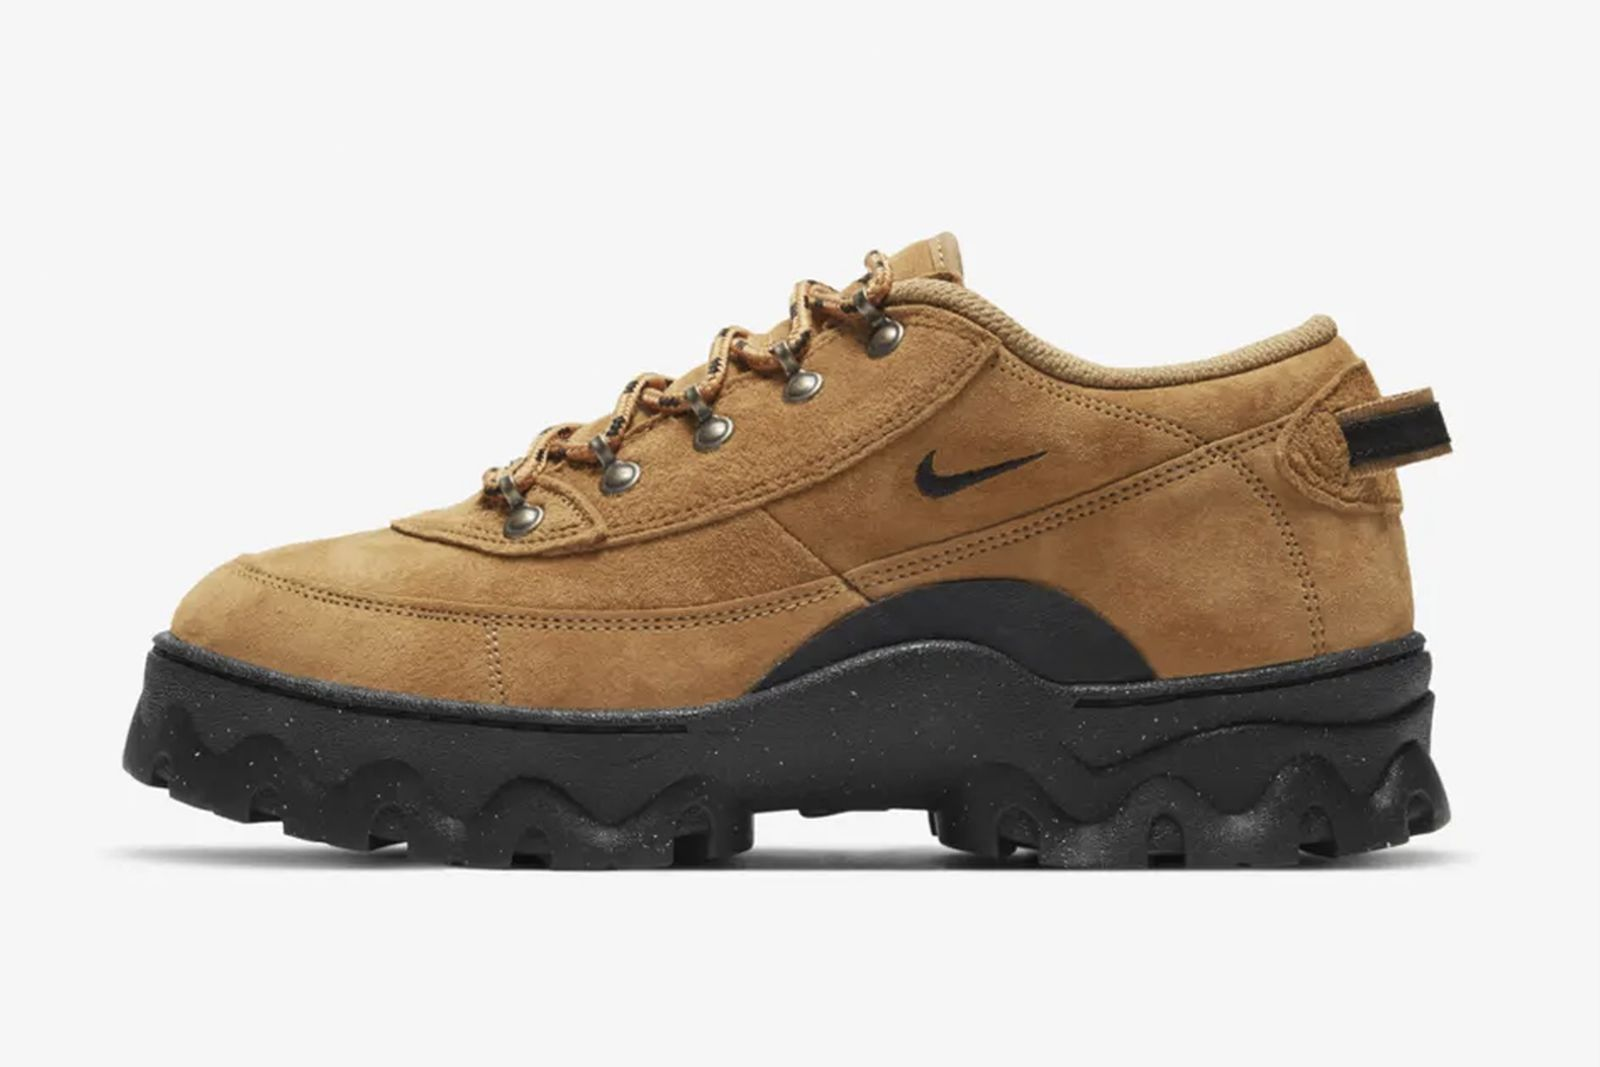 nike-lahar-low-release-date-price-07